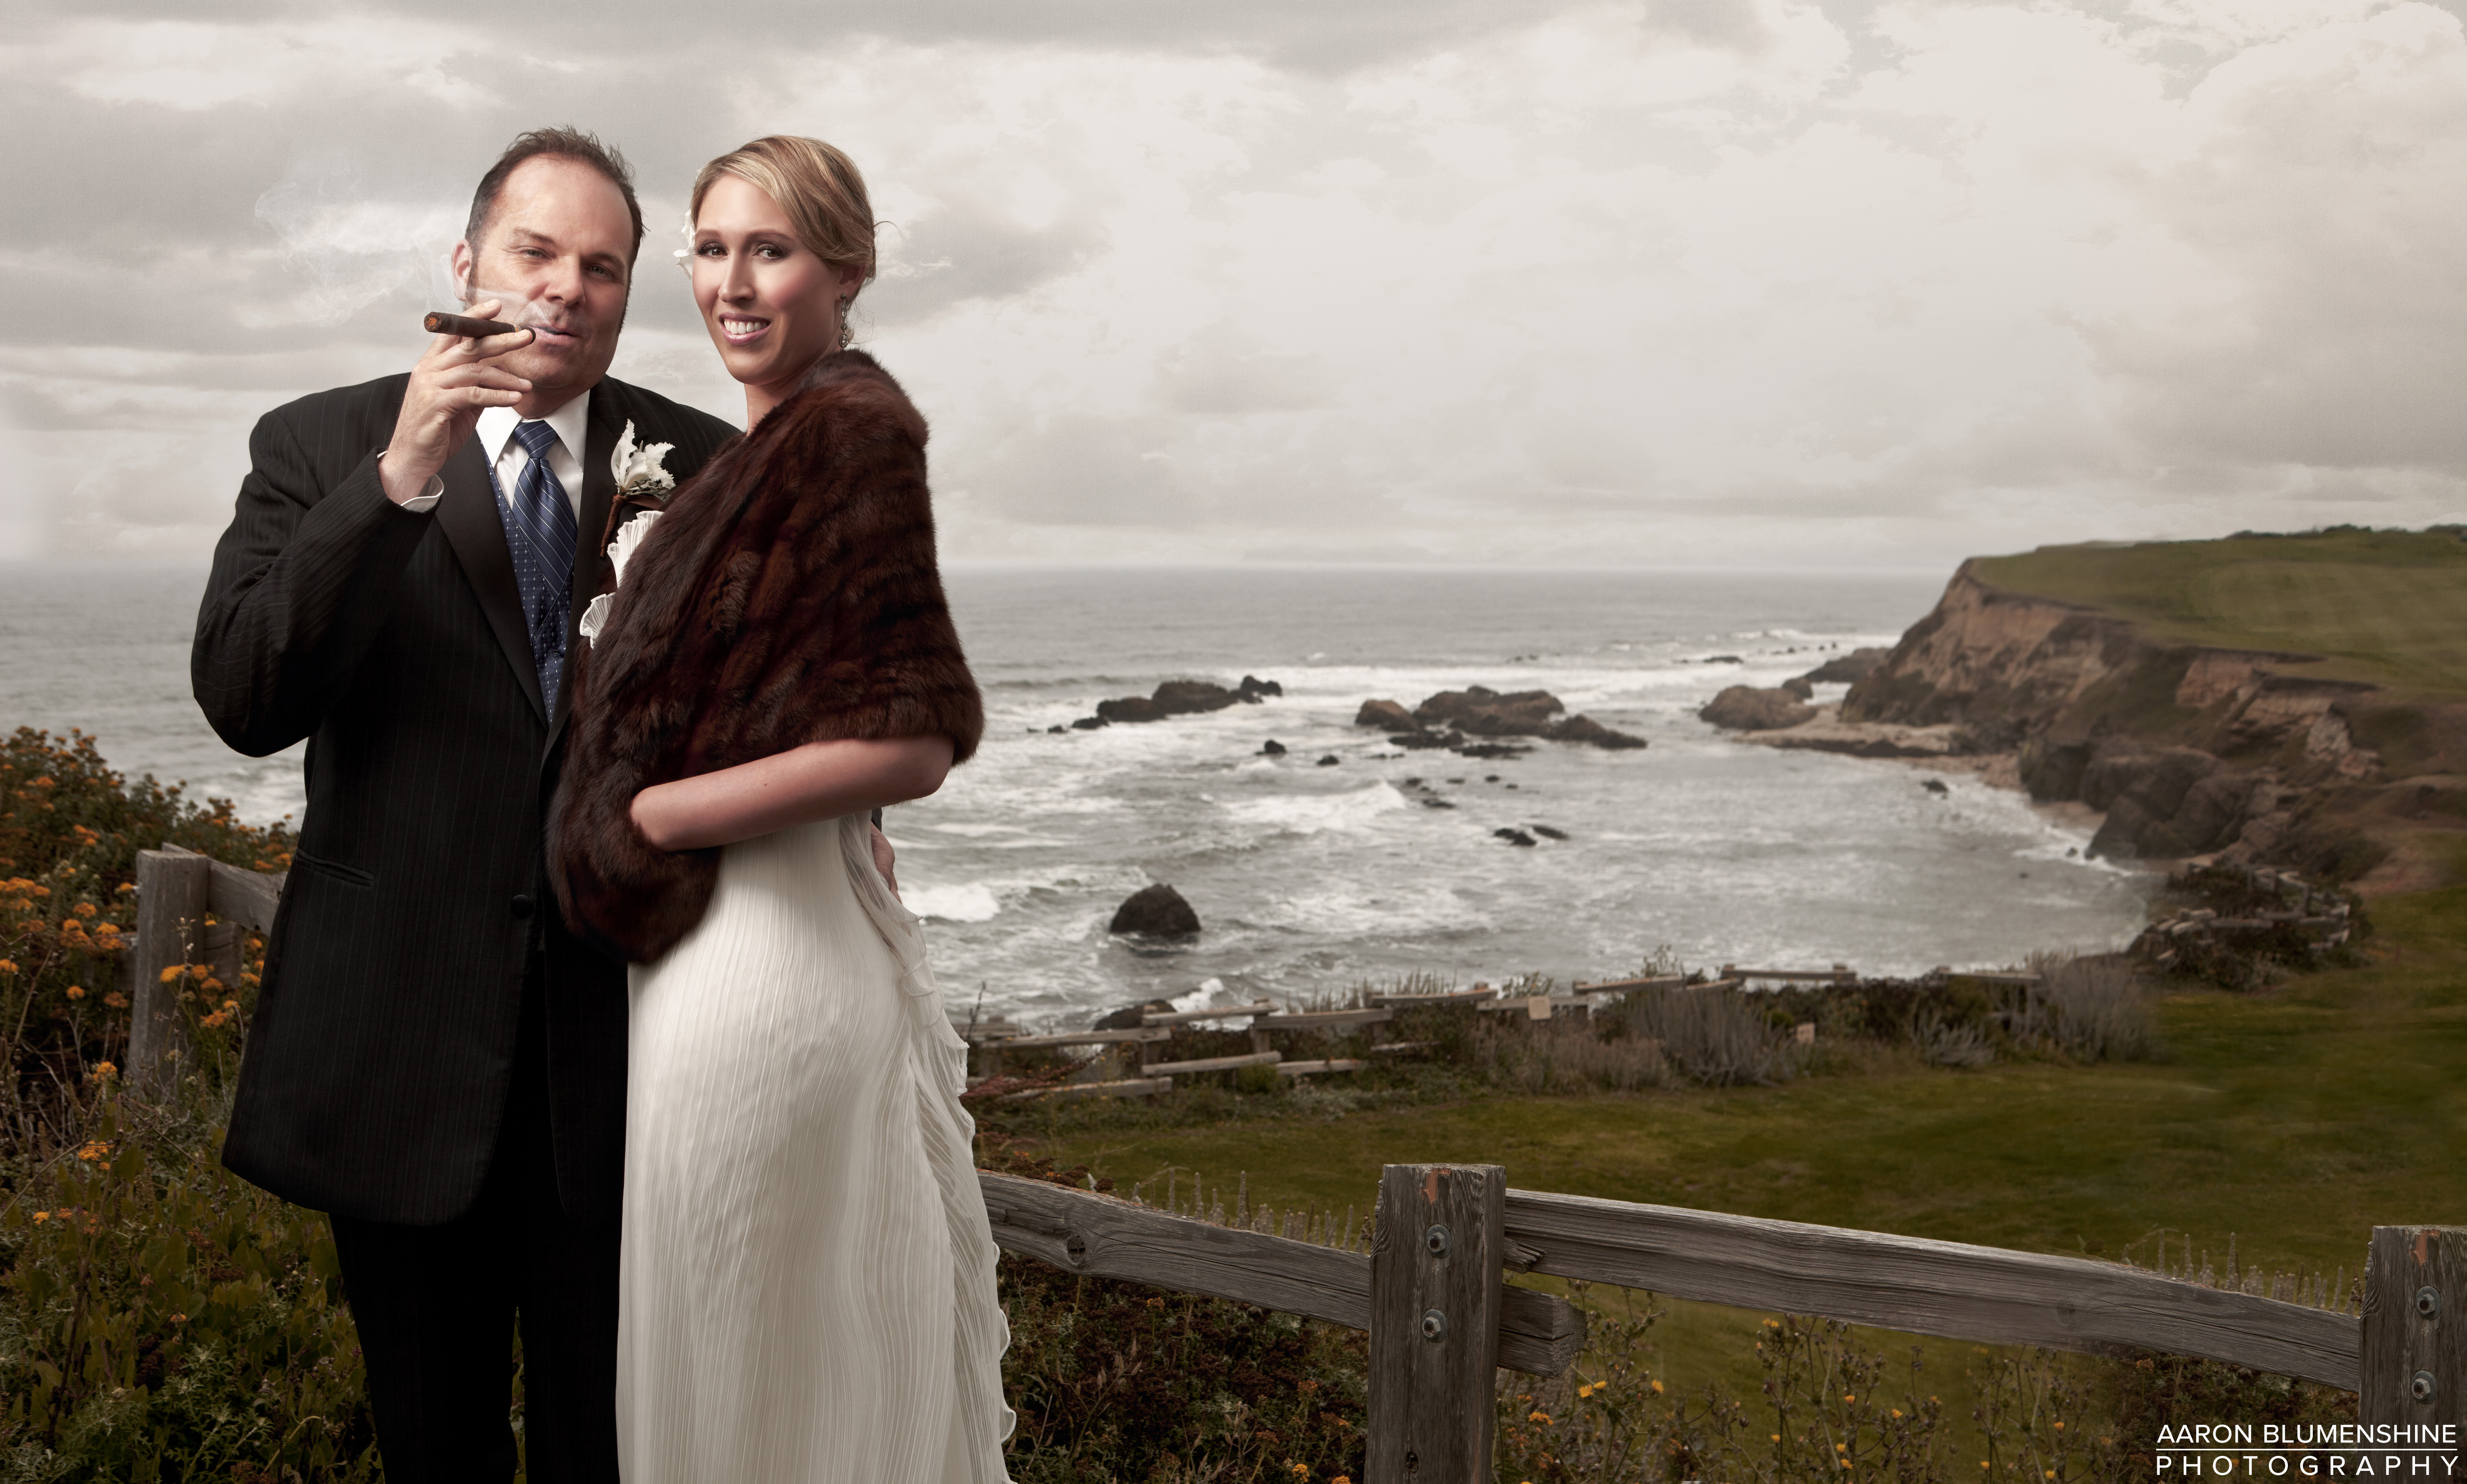 A Photograph From Wedding At The Ritz Carlton In Half Moon Bay